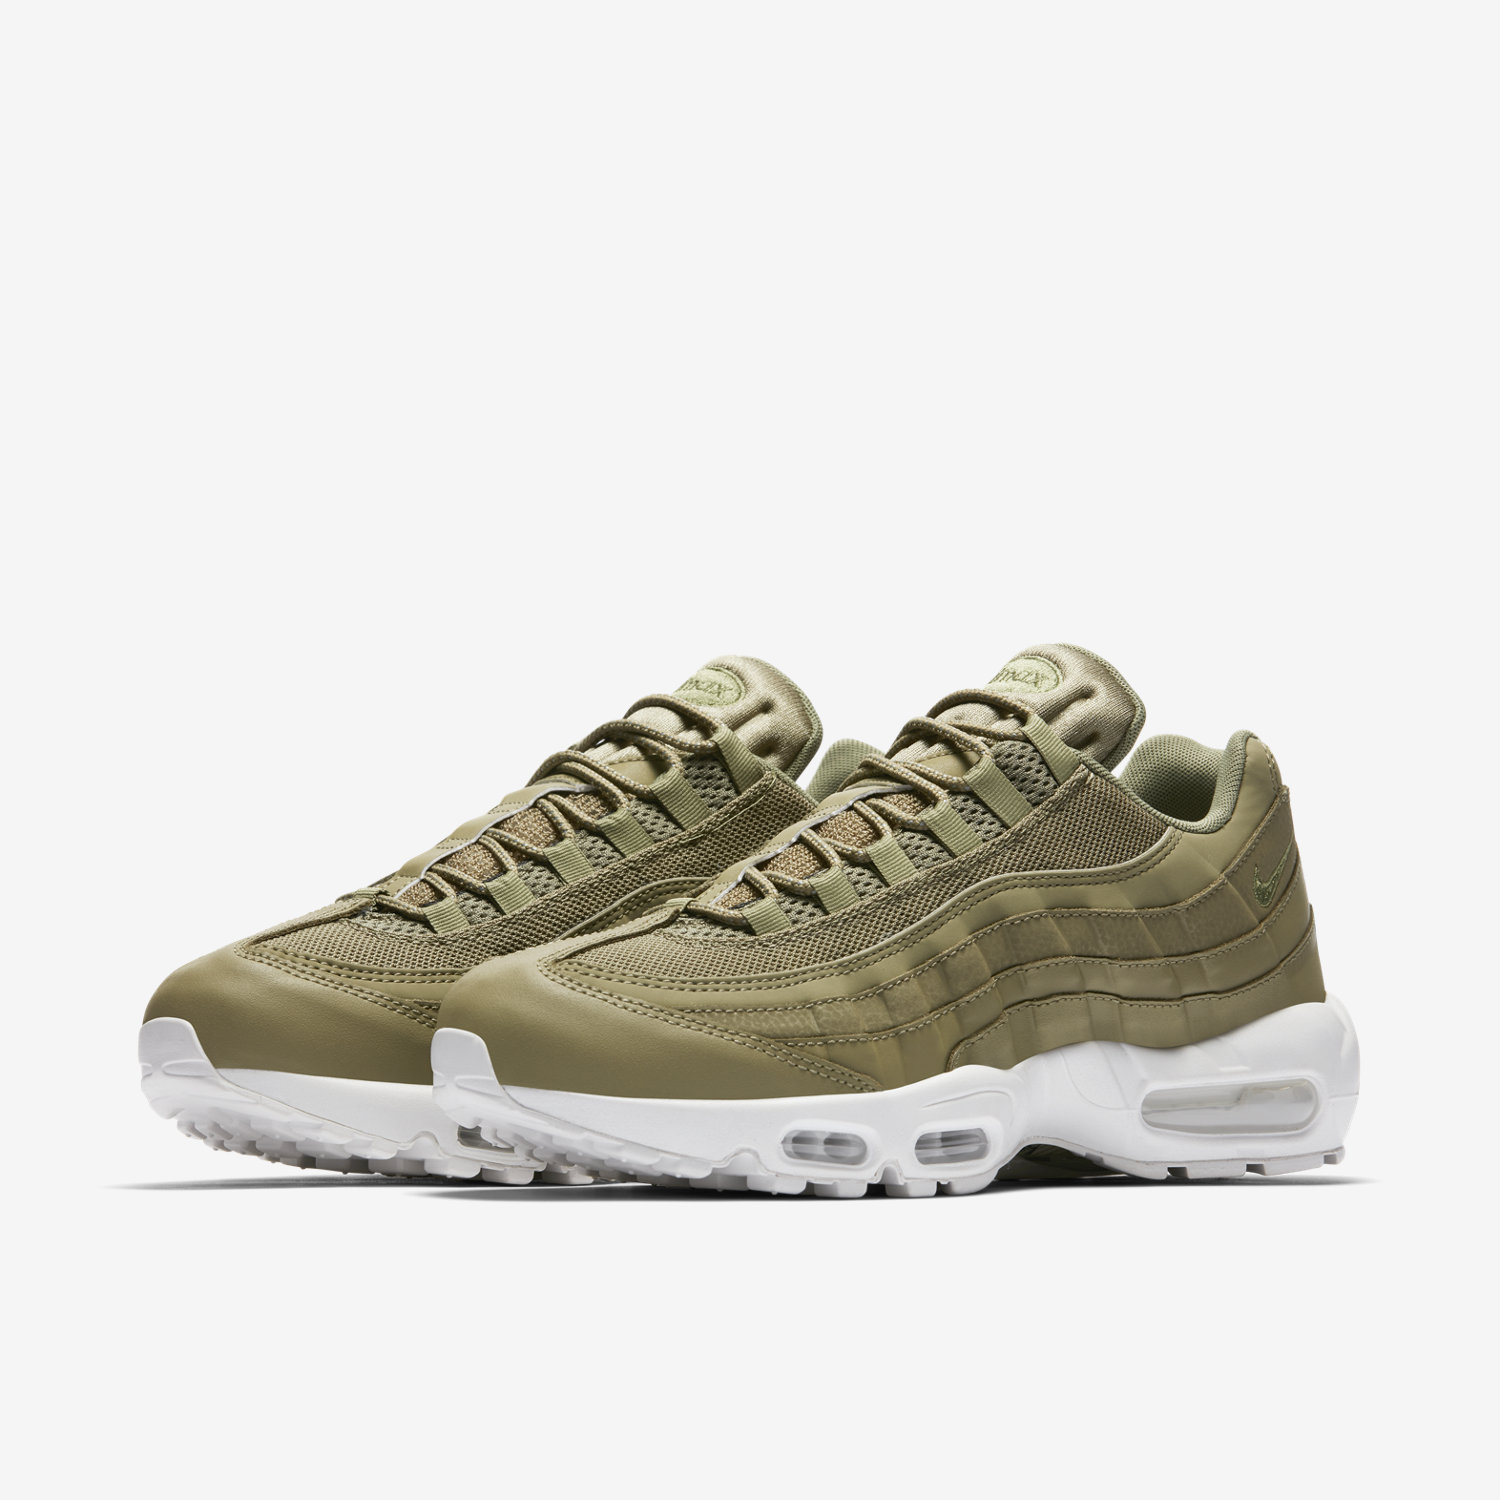 hot products outlet online quite nice Nike Air Max 95 Essential : Nike: Discounted Nike Shoes ...